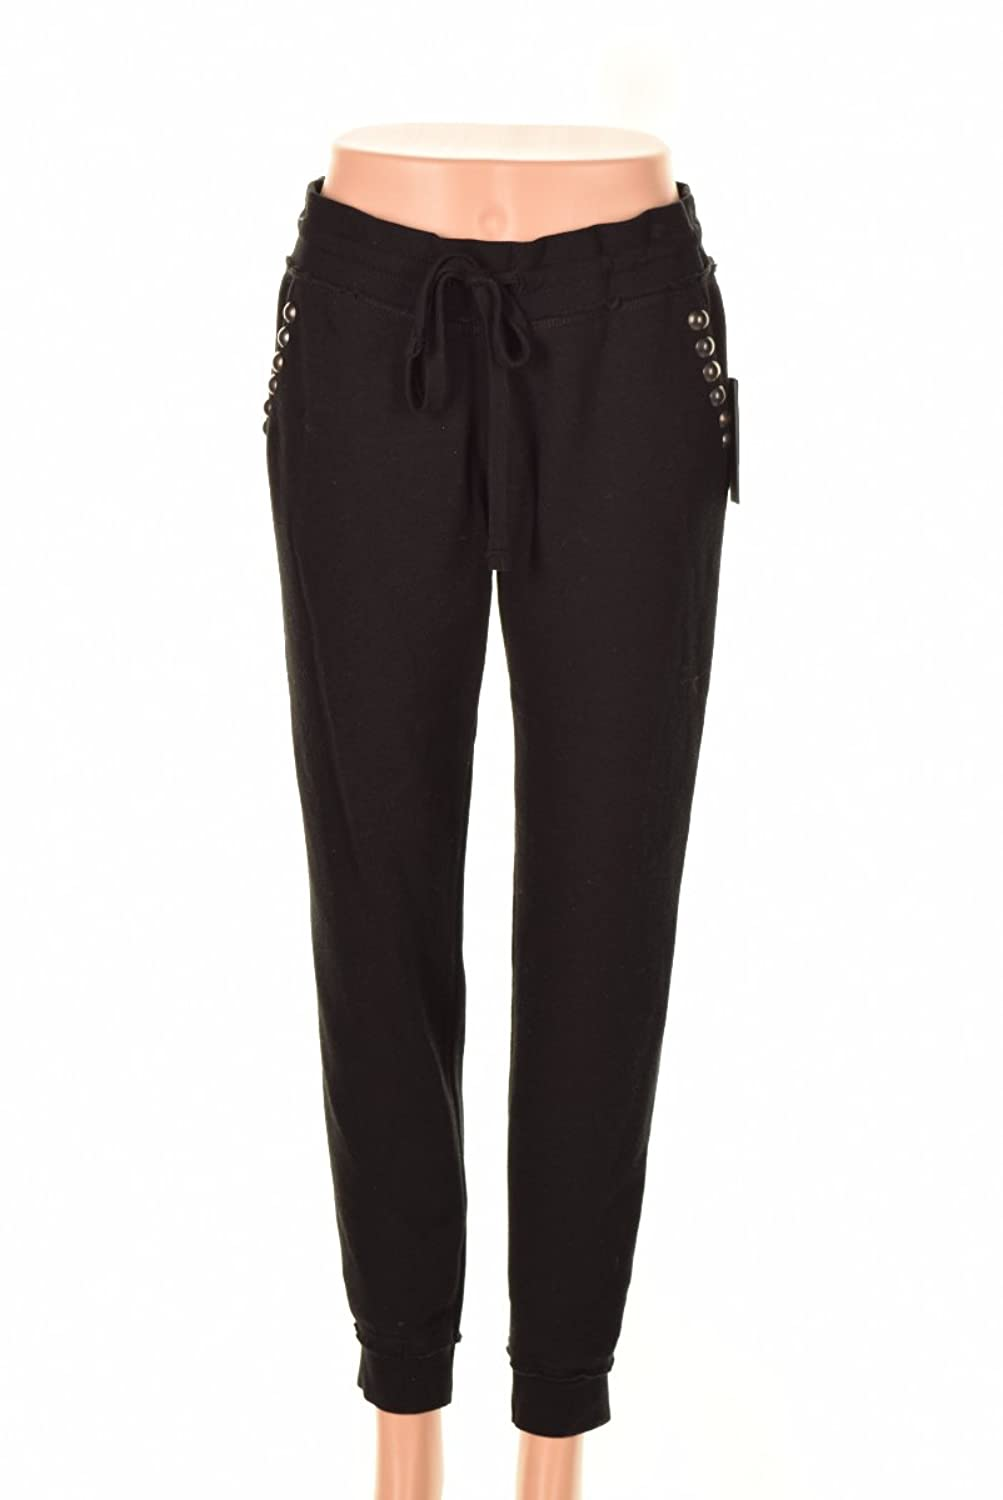 Guess Black Mid-Rise Studded Fleece Sweatpants XL